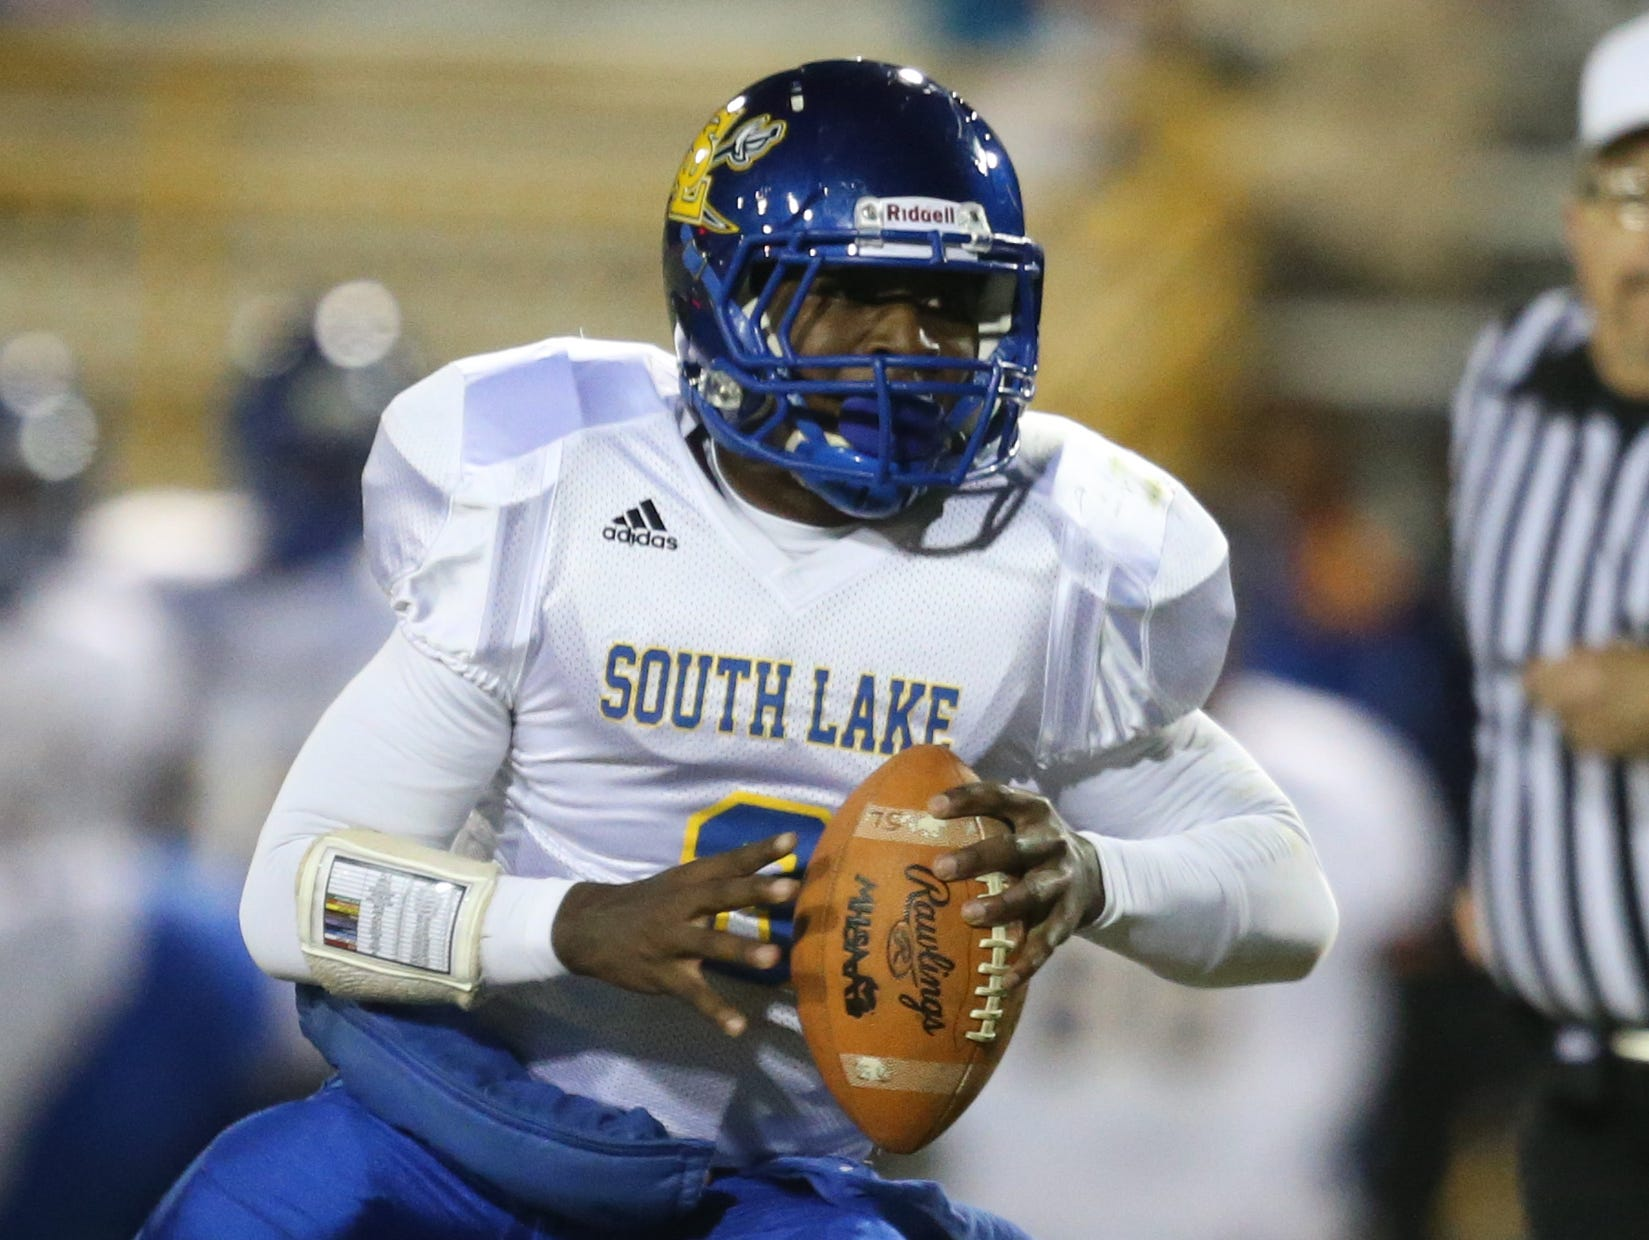 St. Clair Shores South Lake's Datrell Milling